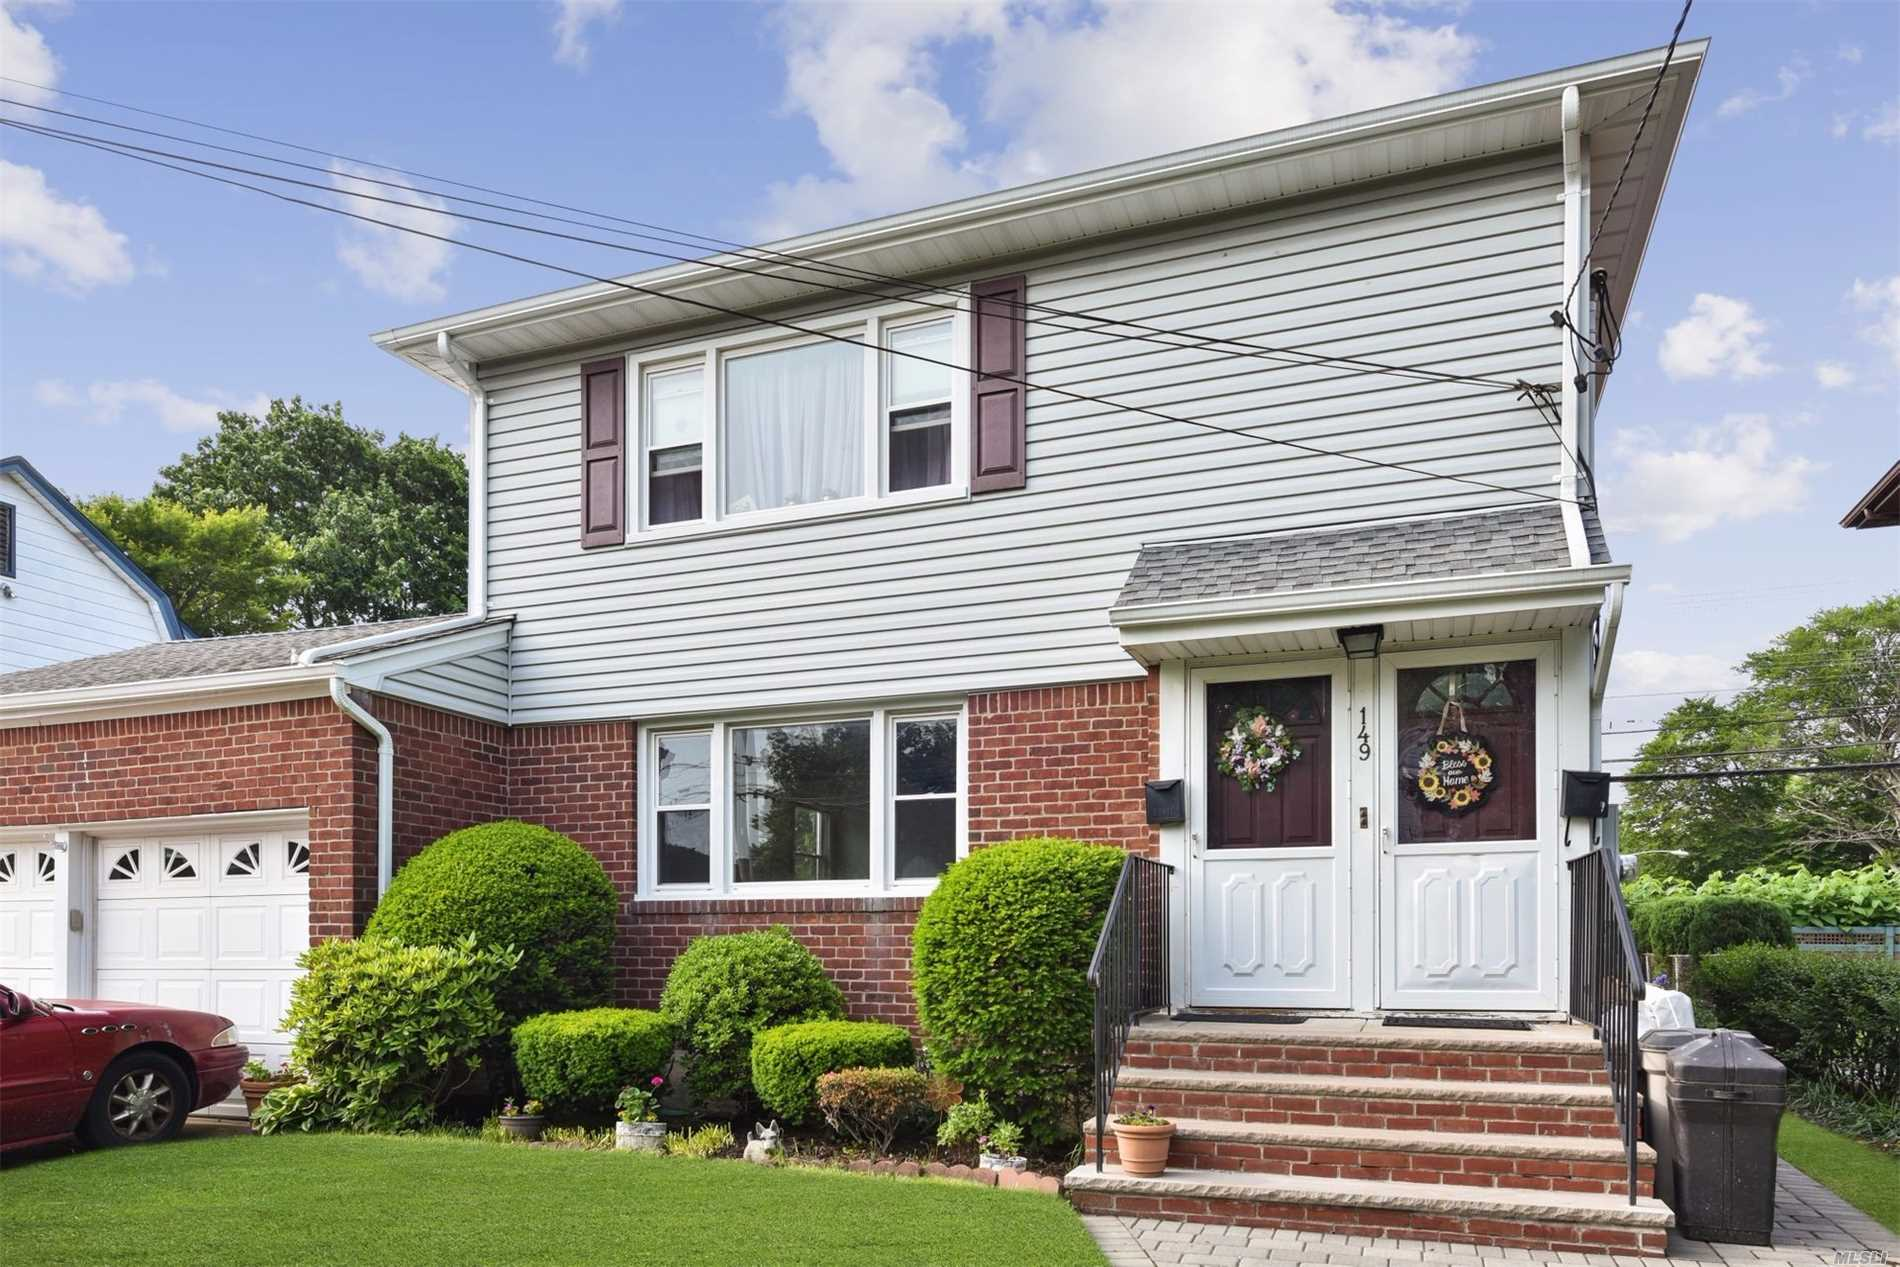 Property for sale at 149 Magnolia Avenue, Floral Park NY 11001, Floral Park,  New York 11001